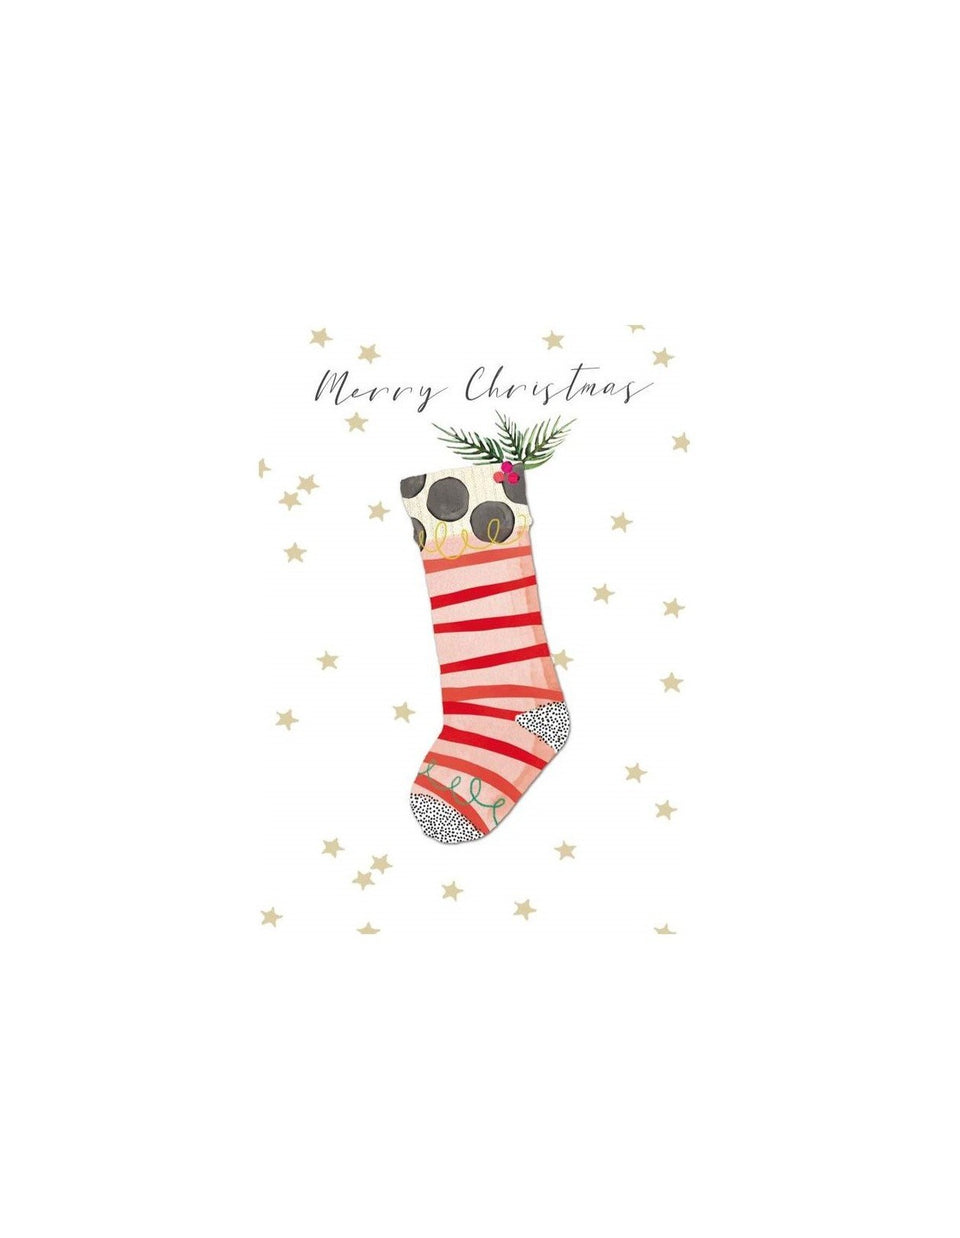 Pink Striped Stocking 5 Pkt - Christmas Card Pack